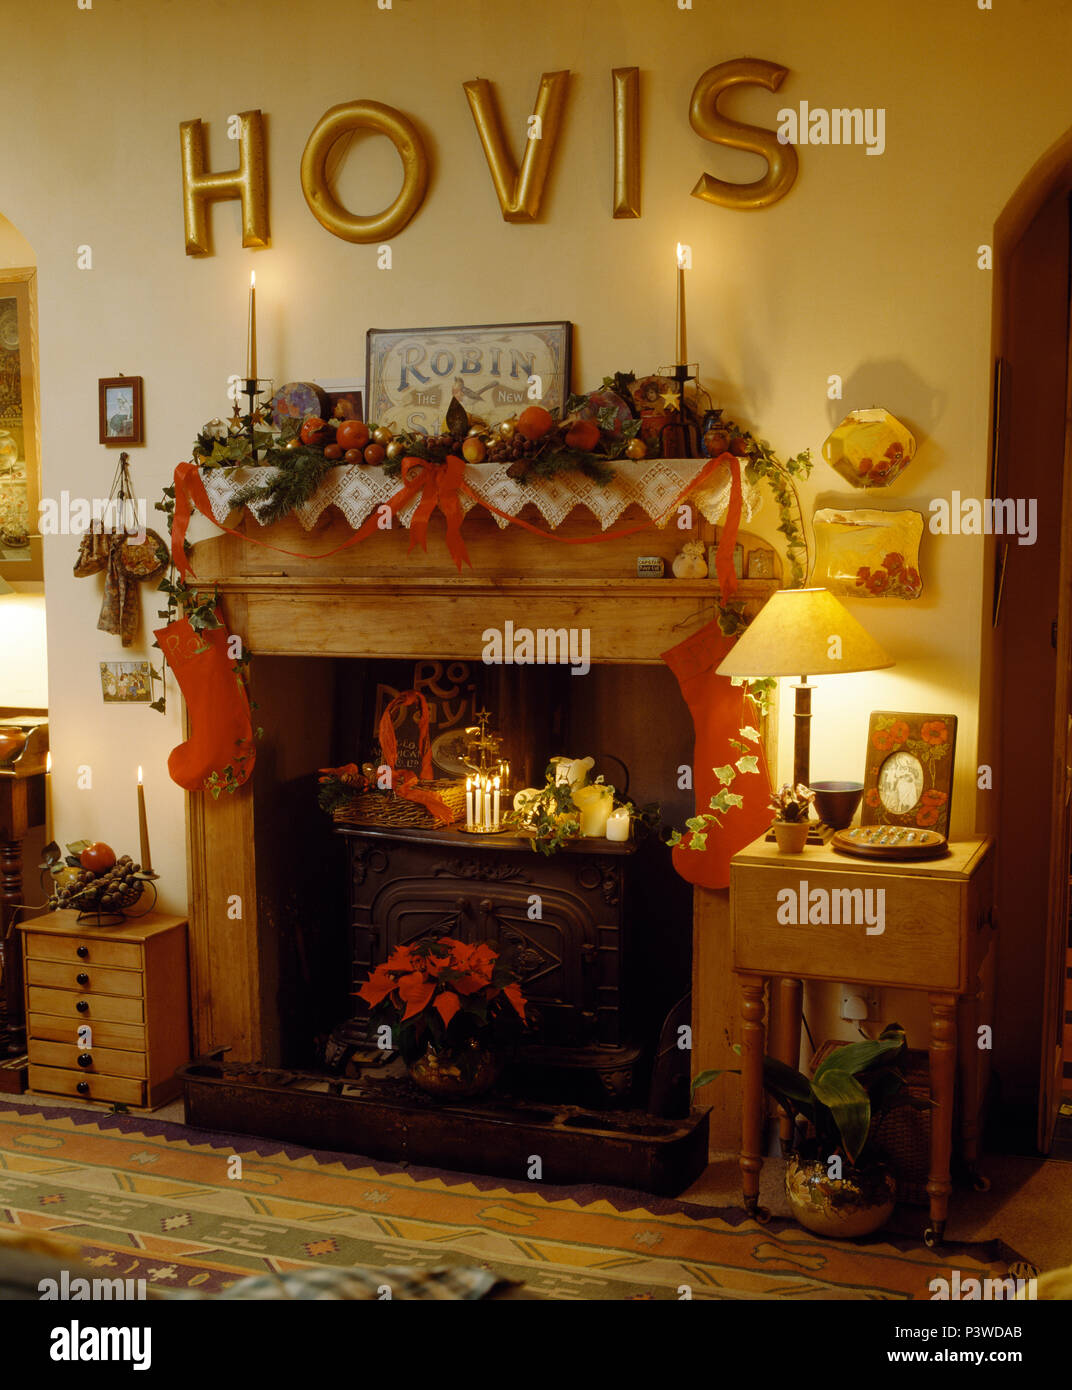 Gold Hovis' letters above fireplace with cast iron stove in dining room decorated for Christmas - Stock Image